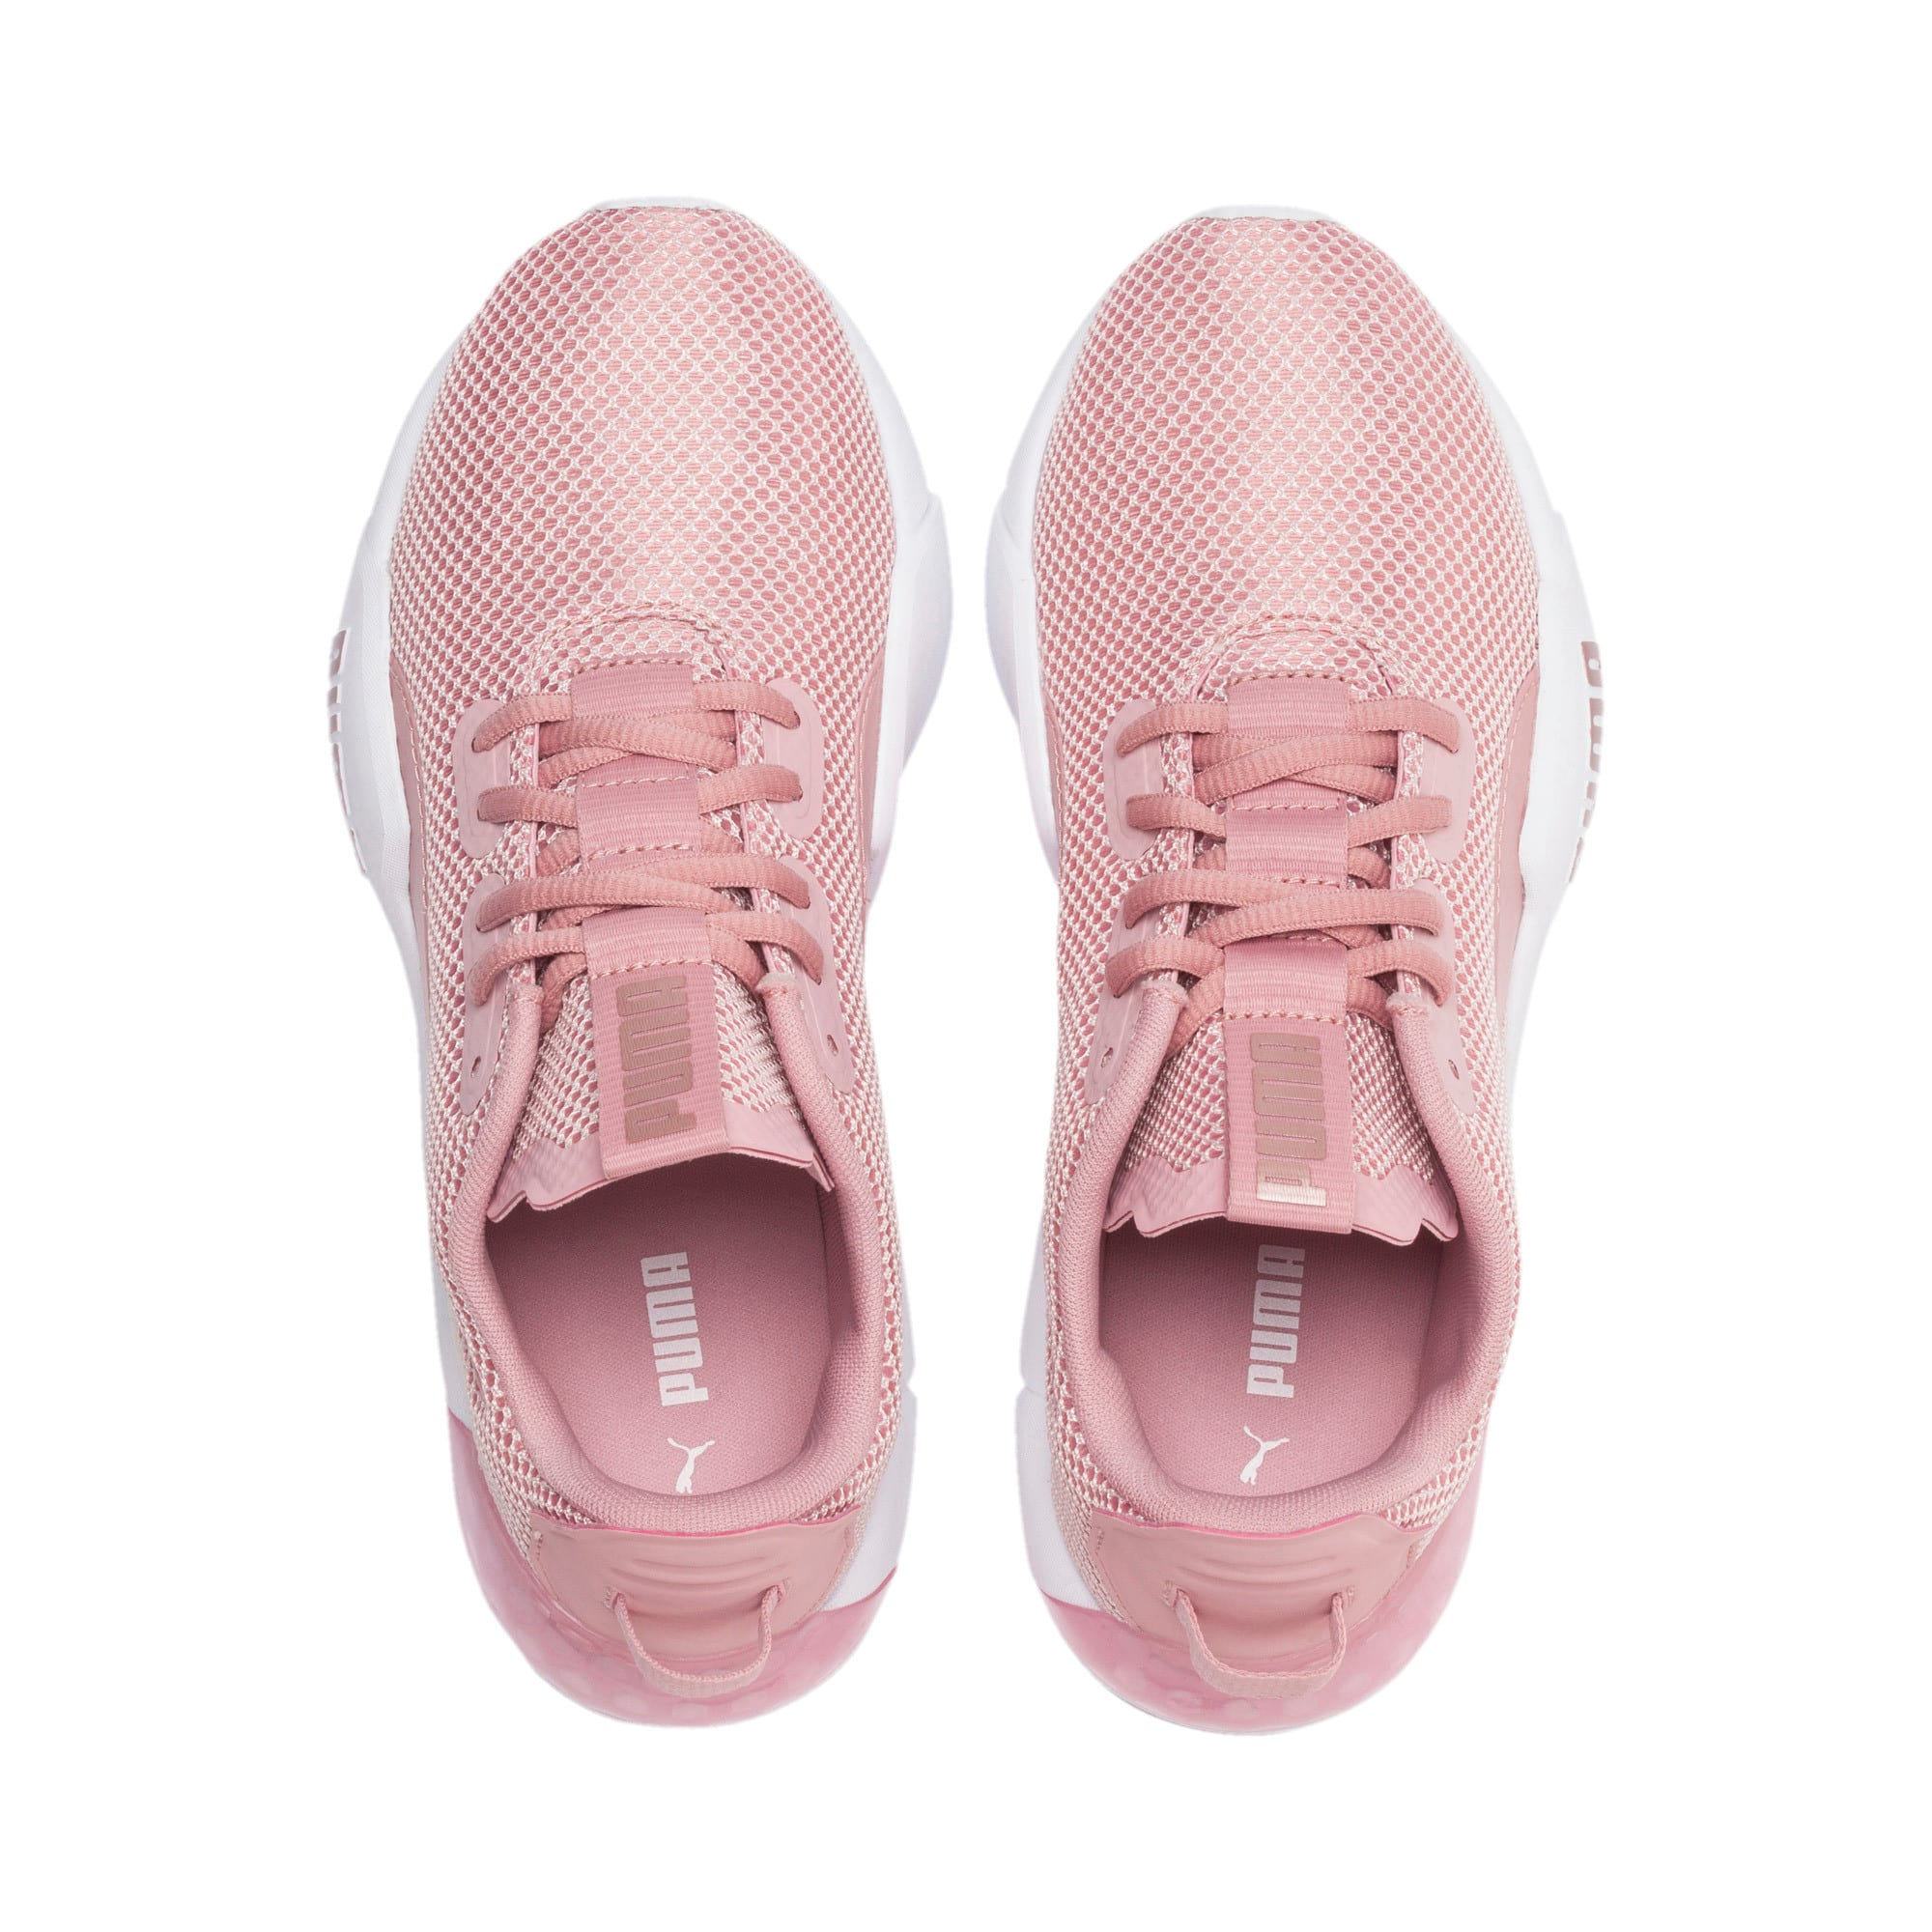 Thumbnail 8 of CELL Phase Women's Trainers, Bridal Rose-Pastel Parchment, medium-IND